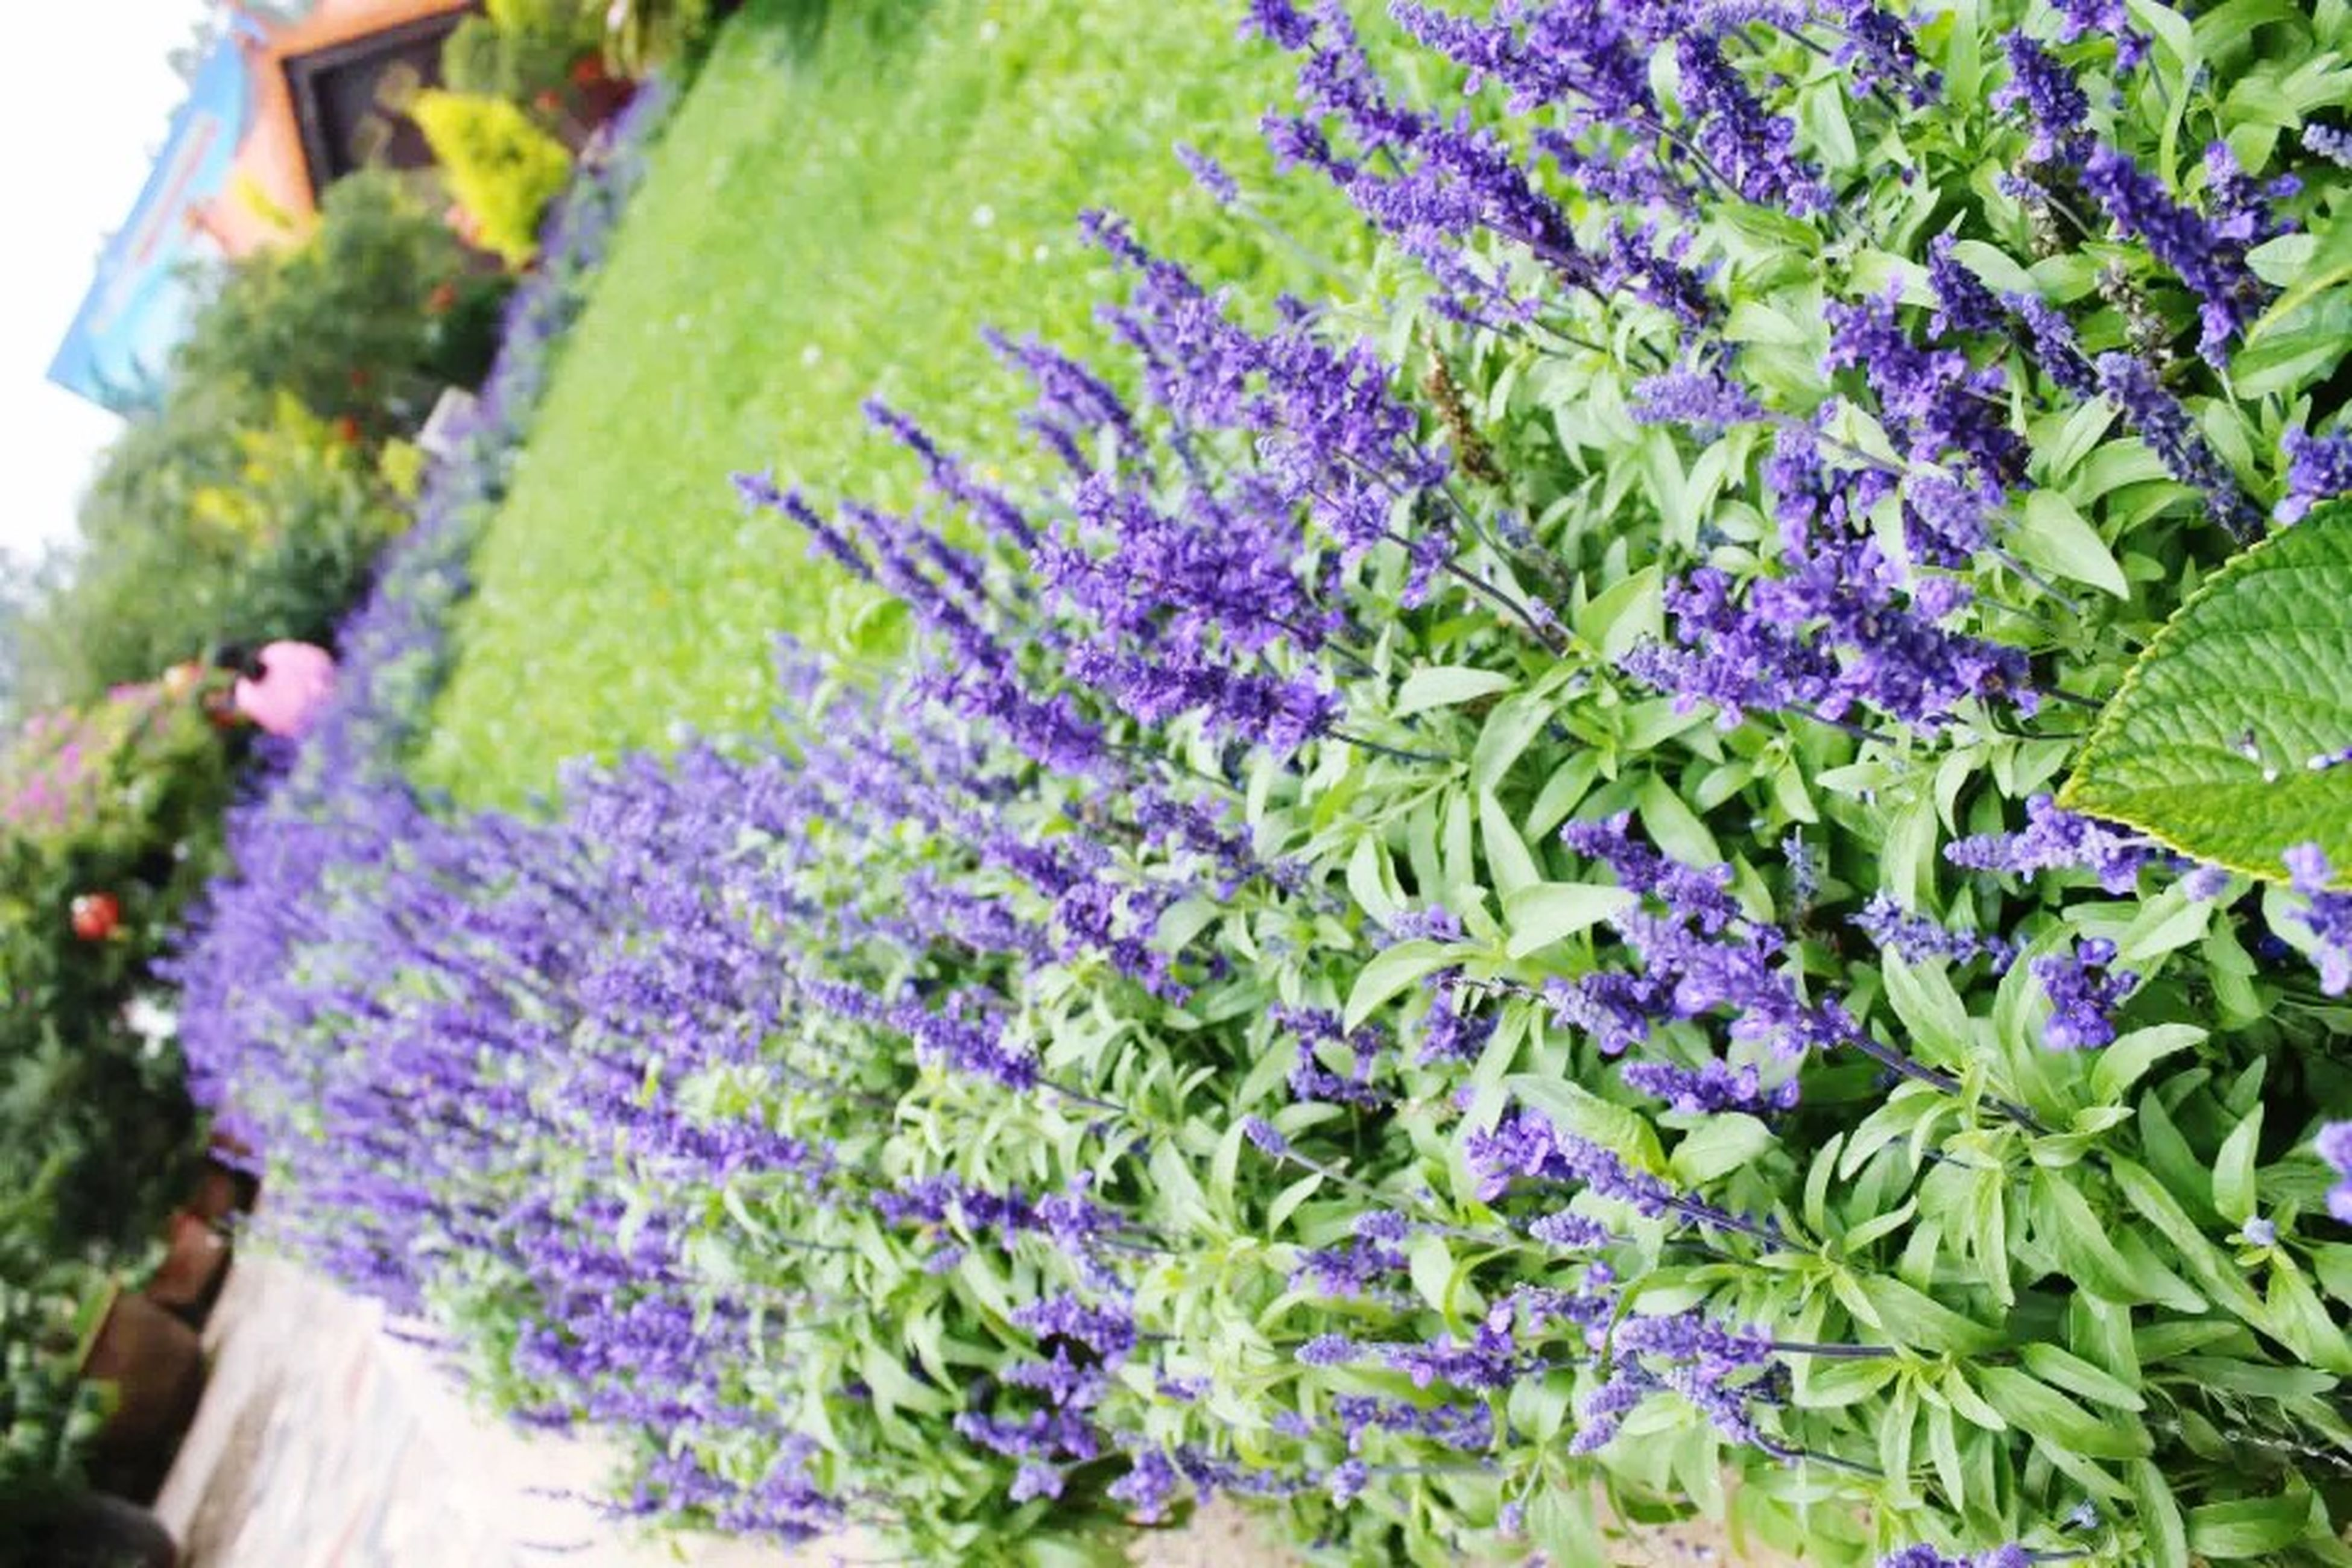 flower, growth, purple, freshness, plant, fragility, beauty in nature, leaf, nature, close-up, blooming, outdoors, building exterior, green color, day, no people, focus on foreground, in bloom, blue, petal